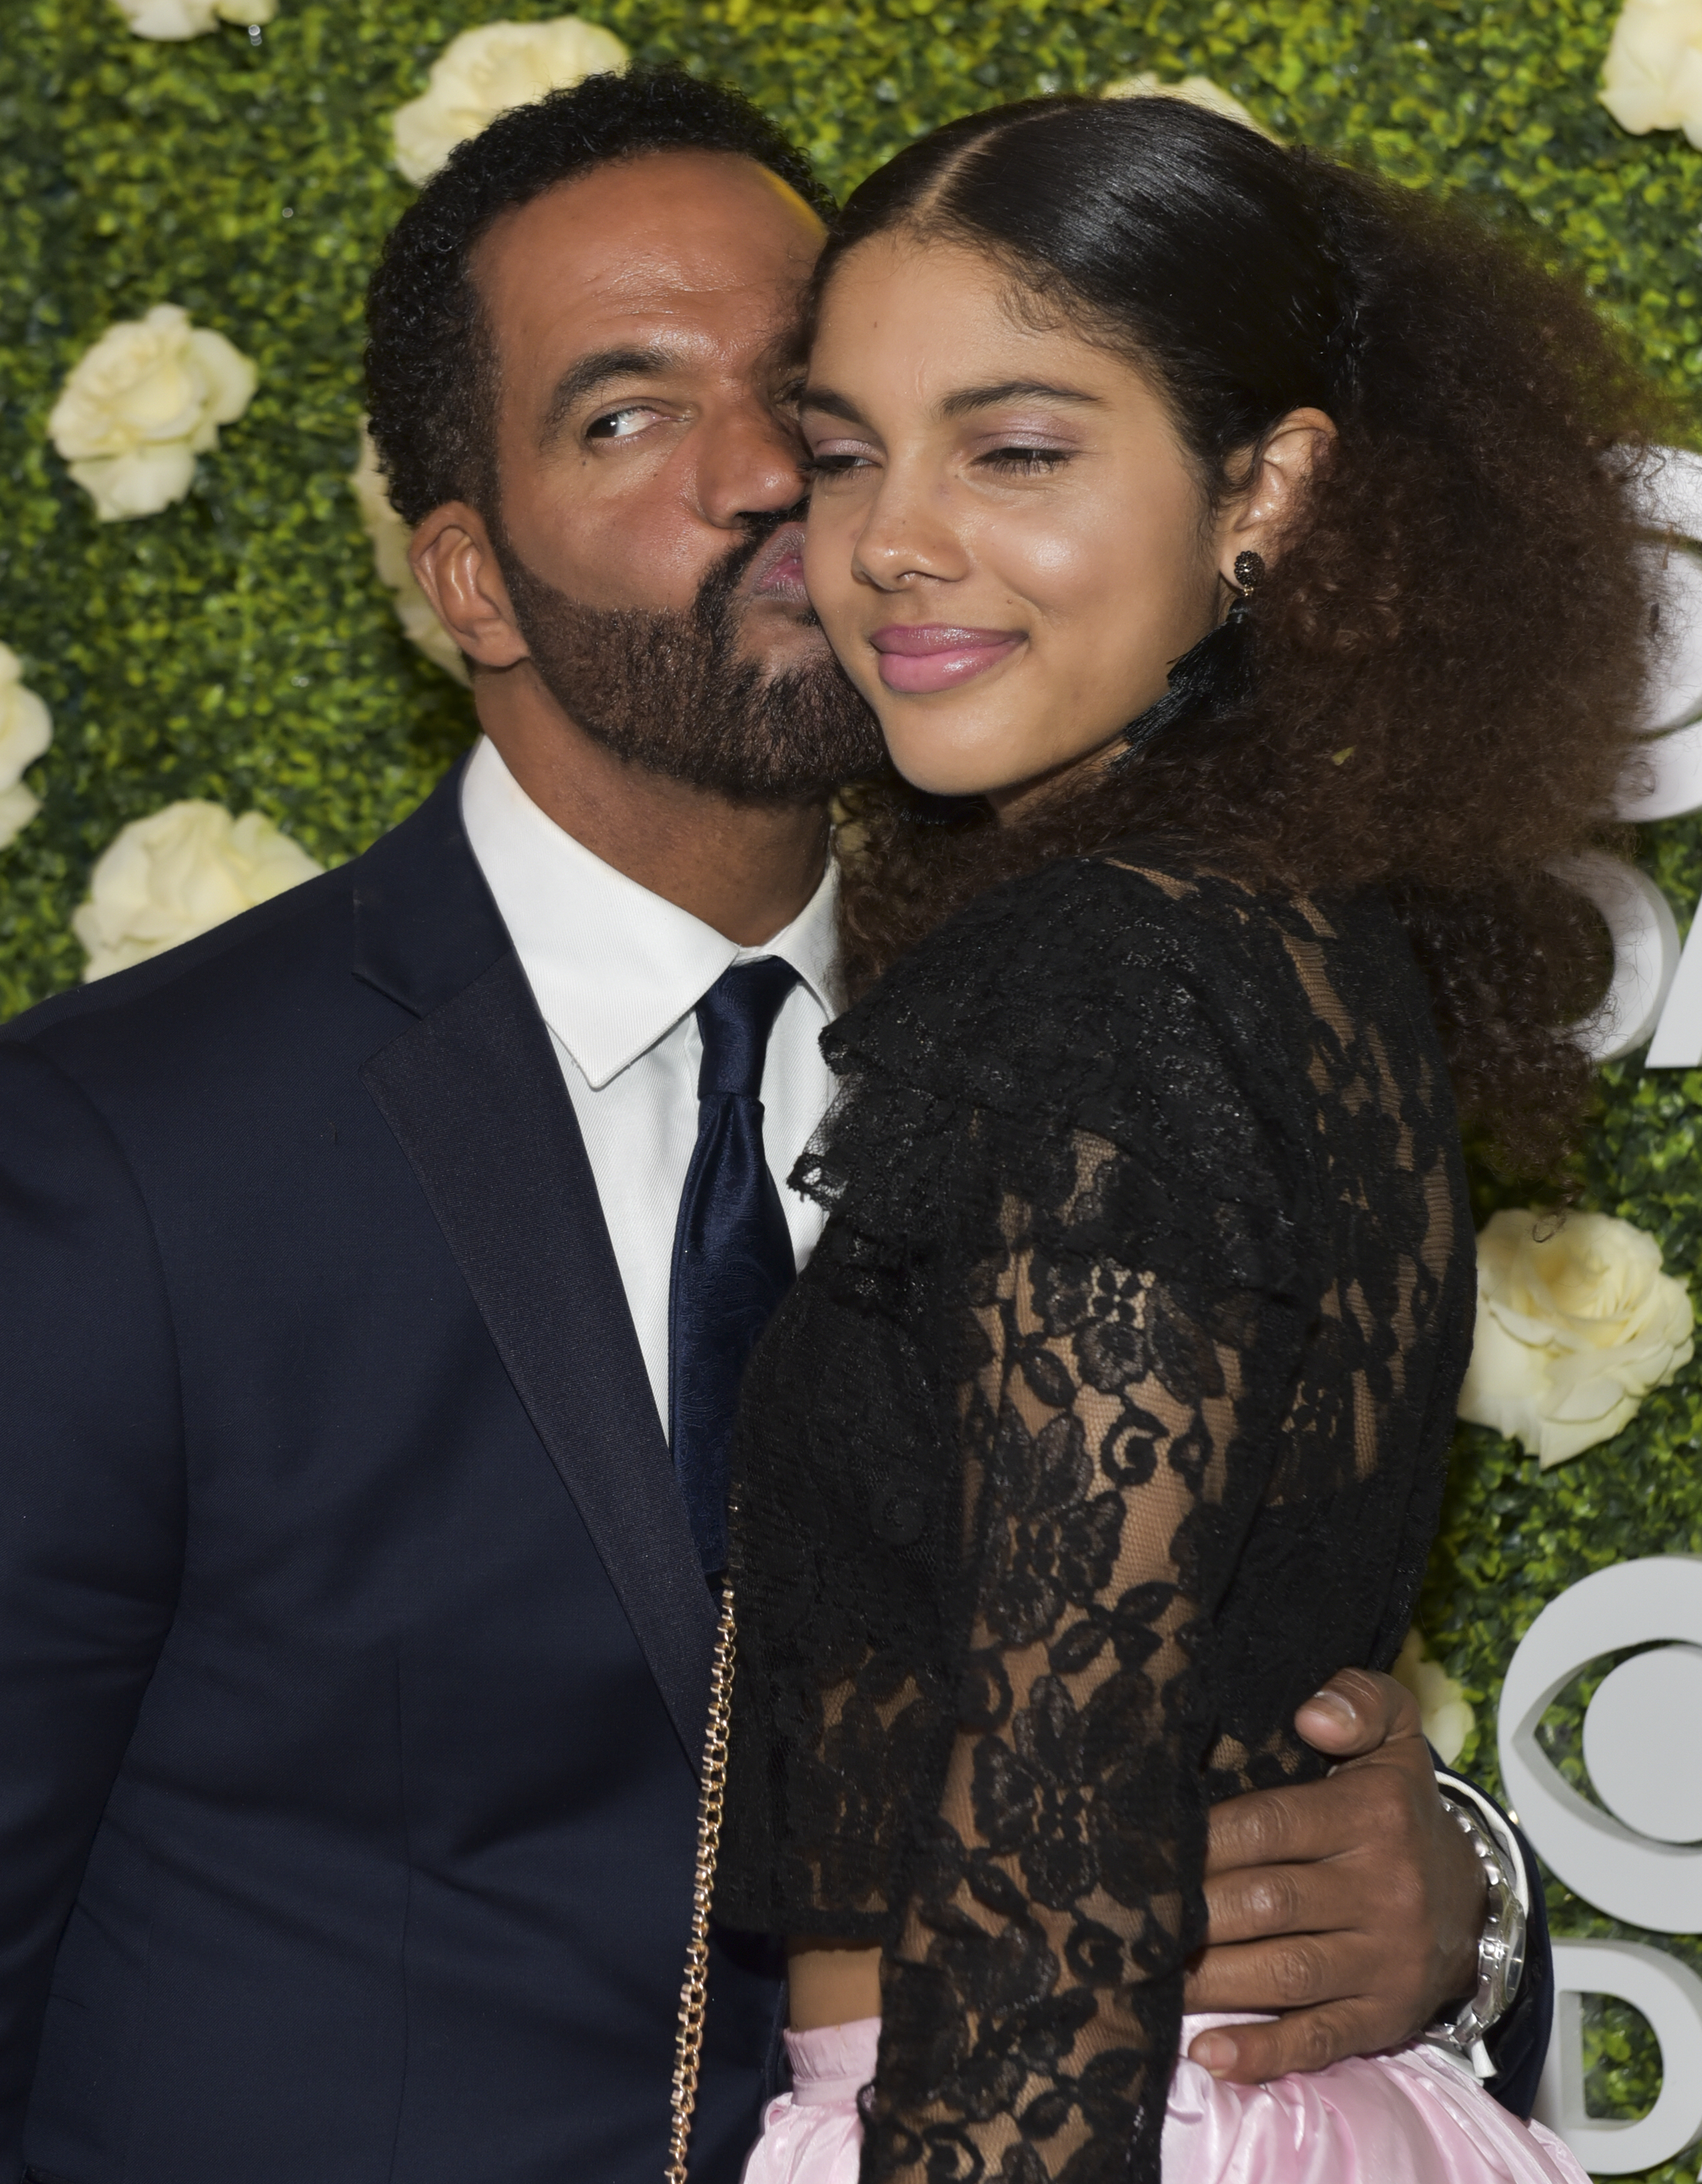 Actor Kristoff St. John (L) and daughter Paris St. John attend the CBS Daytime Emmy After Party at Pasadena Convention Center on April 29, 2018, in Pasadena, California. (Getty)